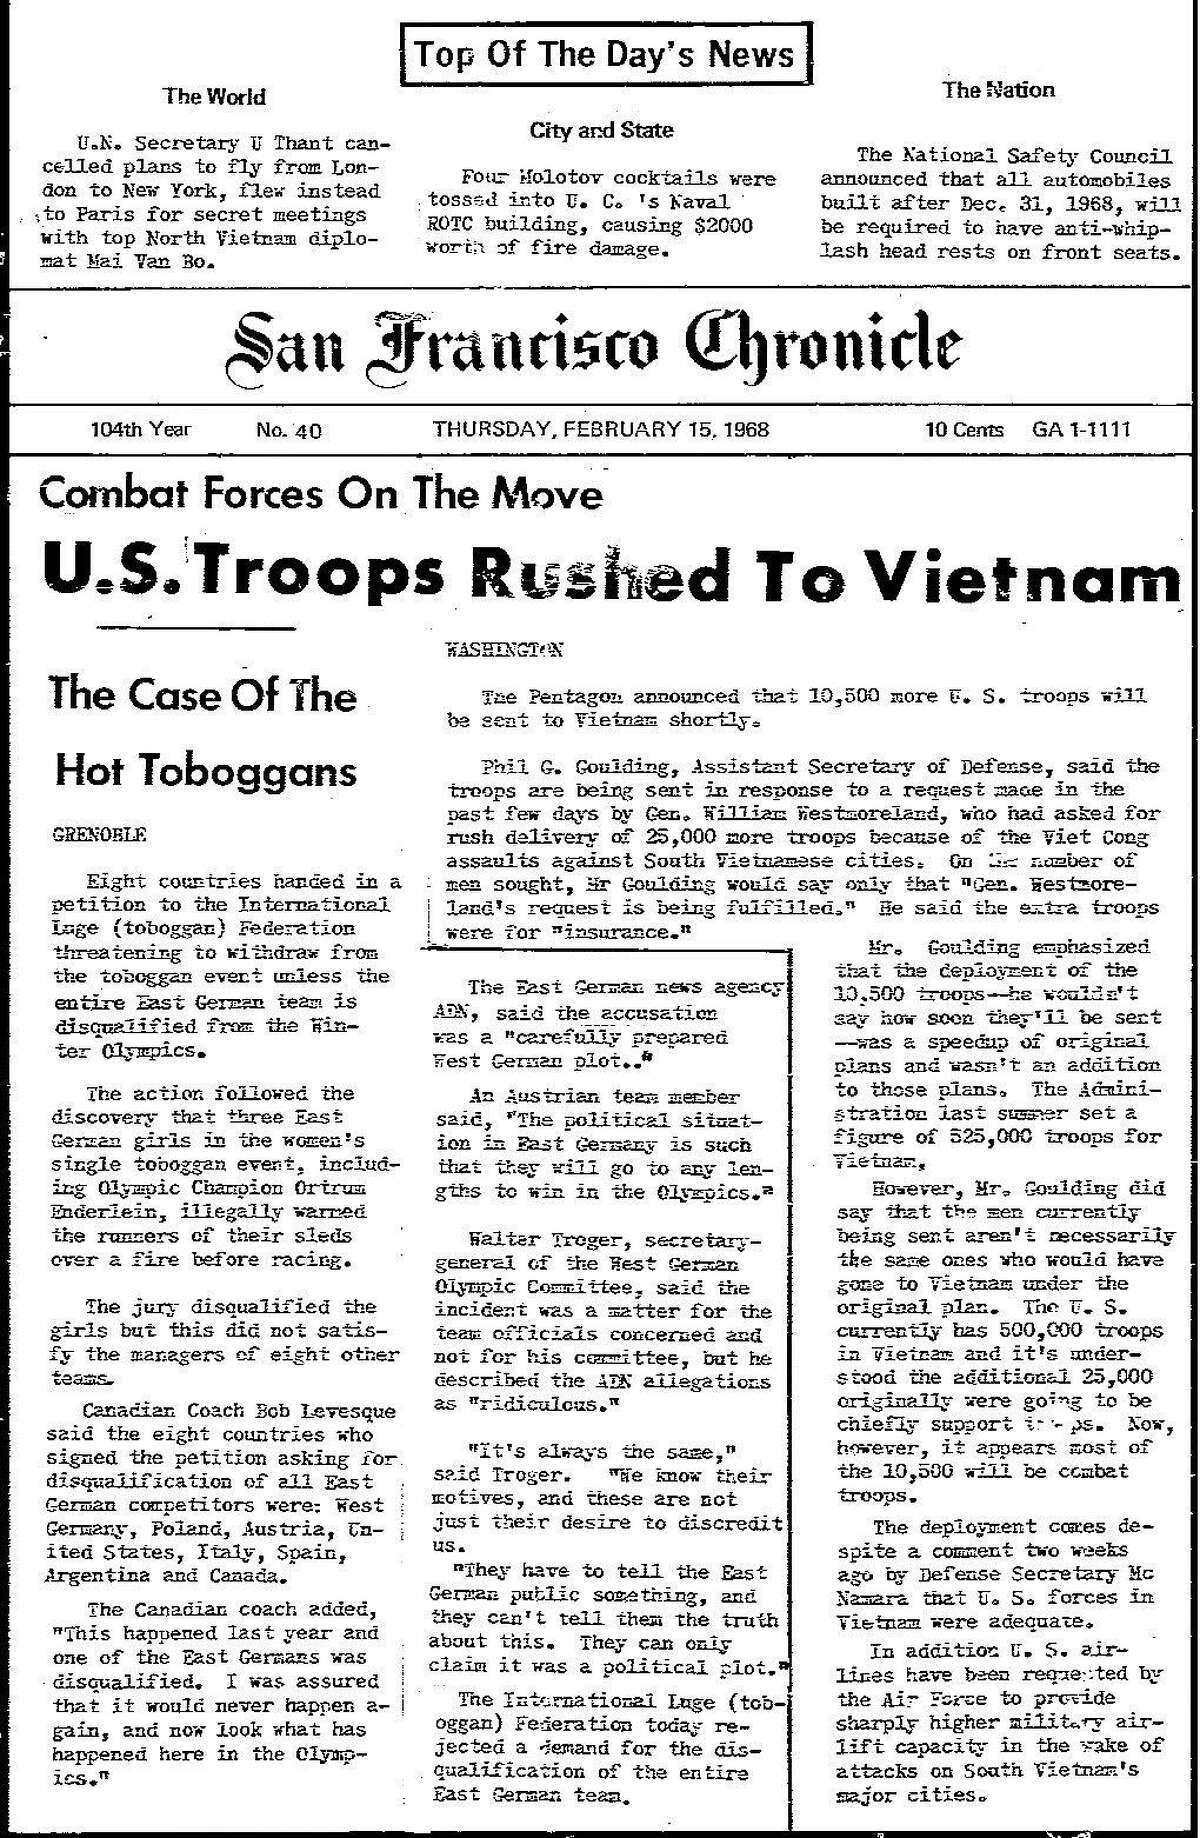 The Chronicle's front page from February 15, 1968, a strike edition, announces more U.S. troops to be sent to Vietnam.